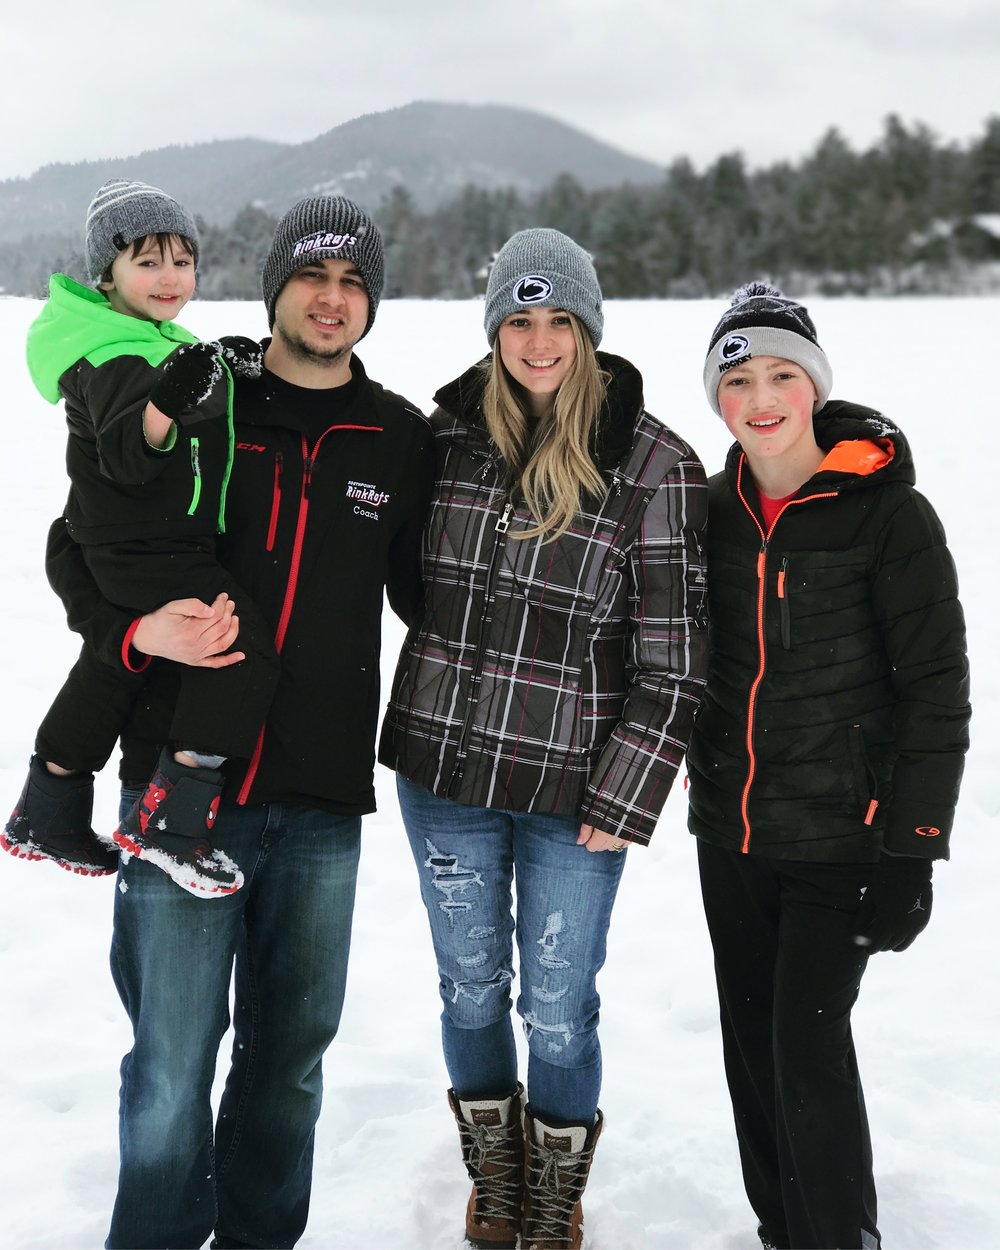 Jessica and her family at Lake Placid, NY for a hockey tournament.